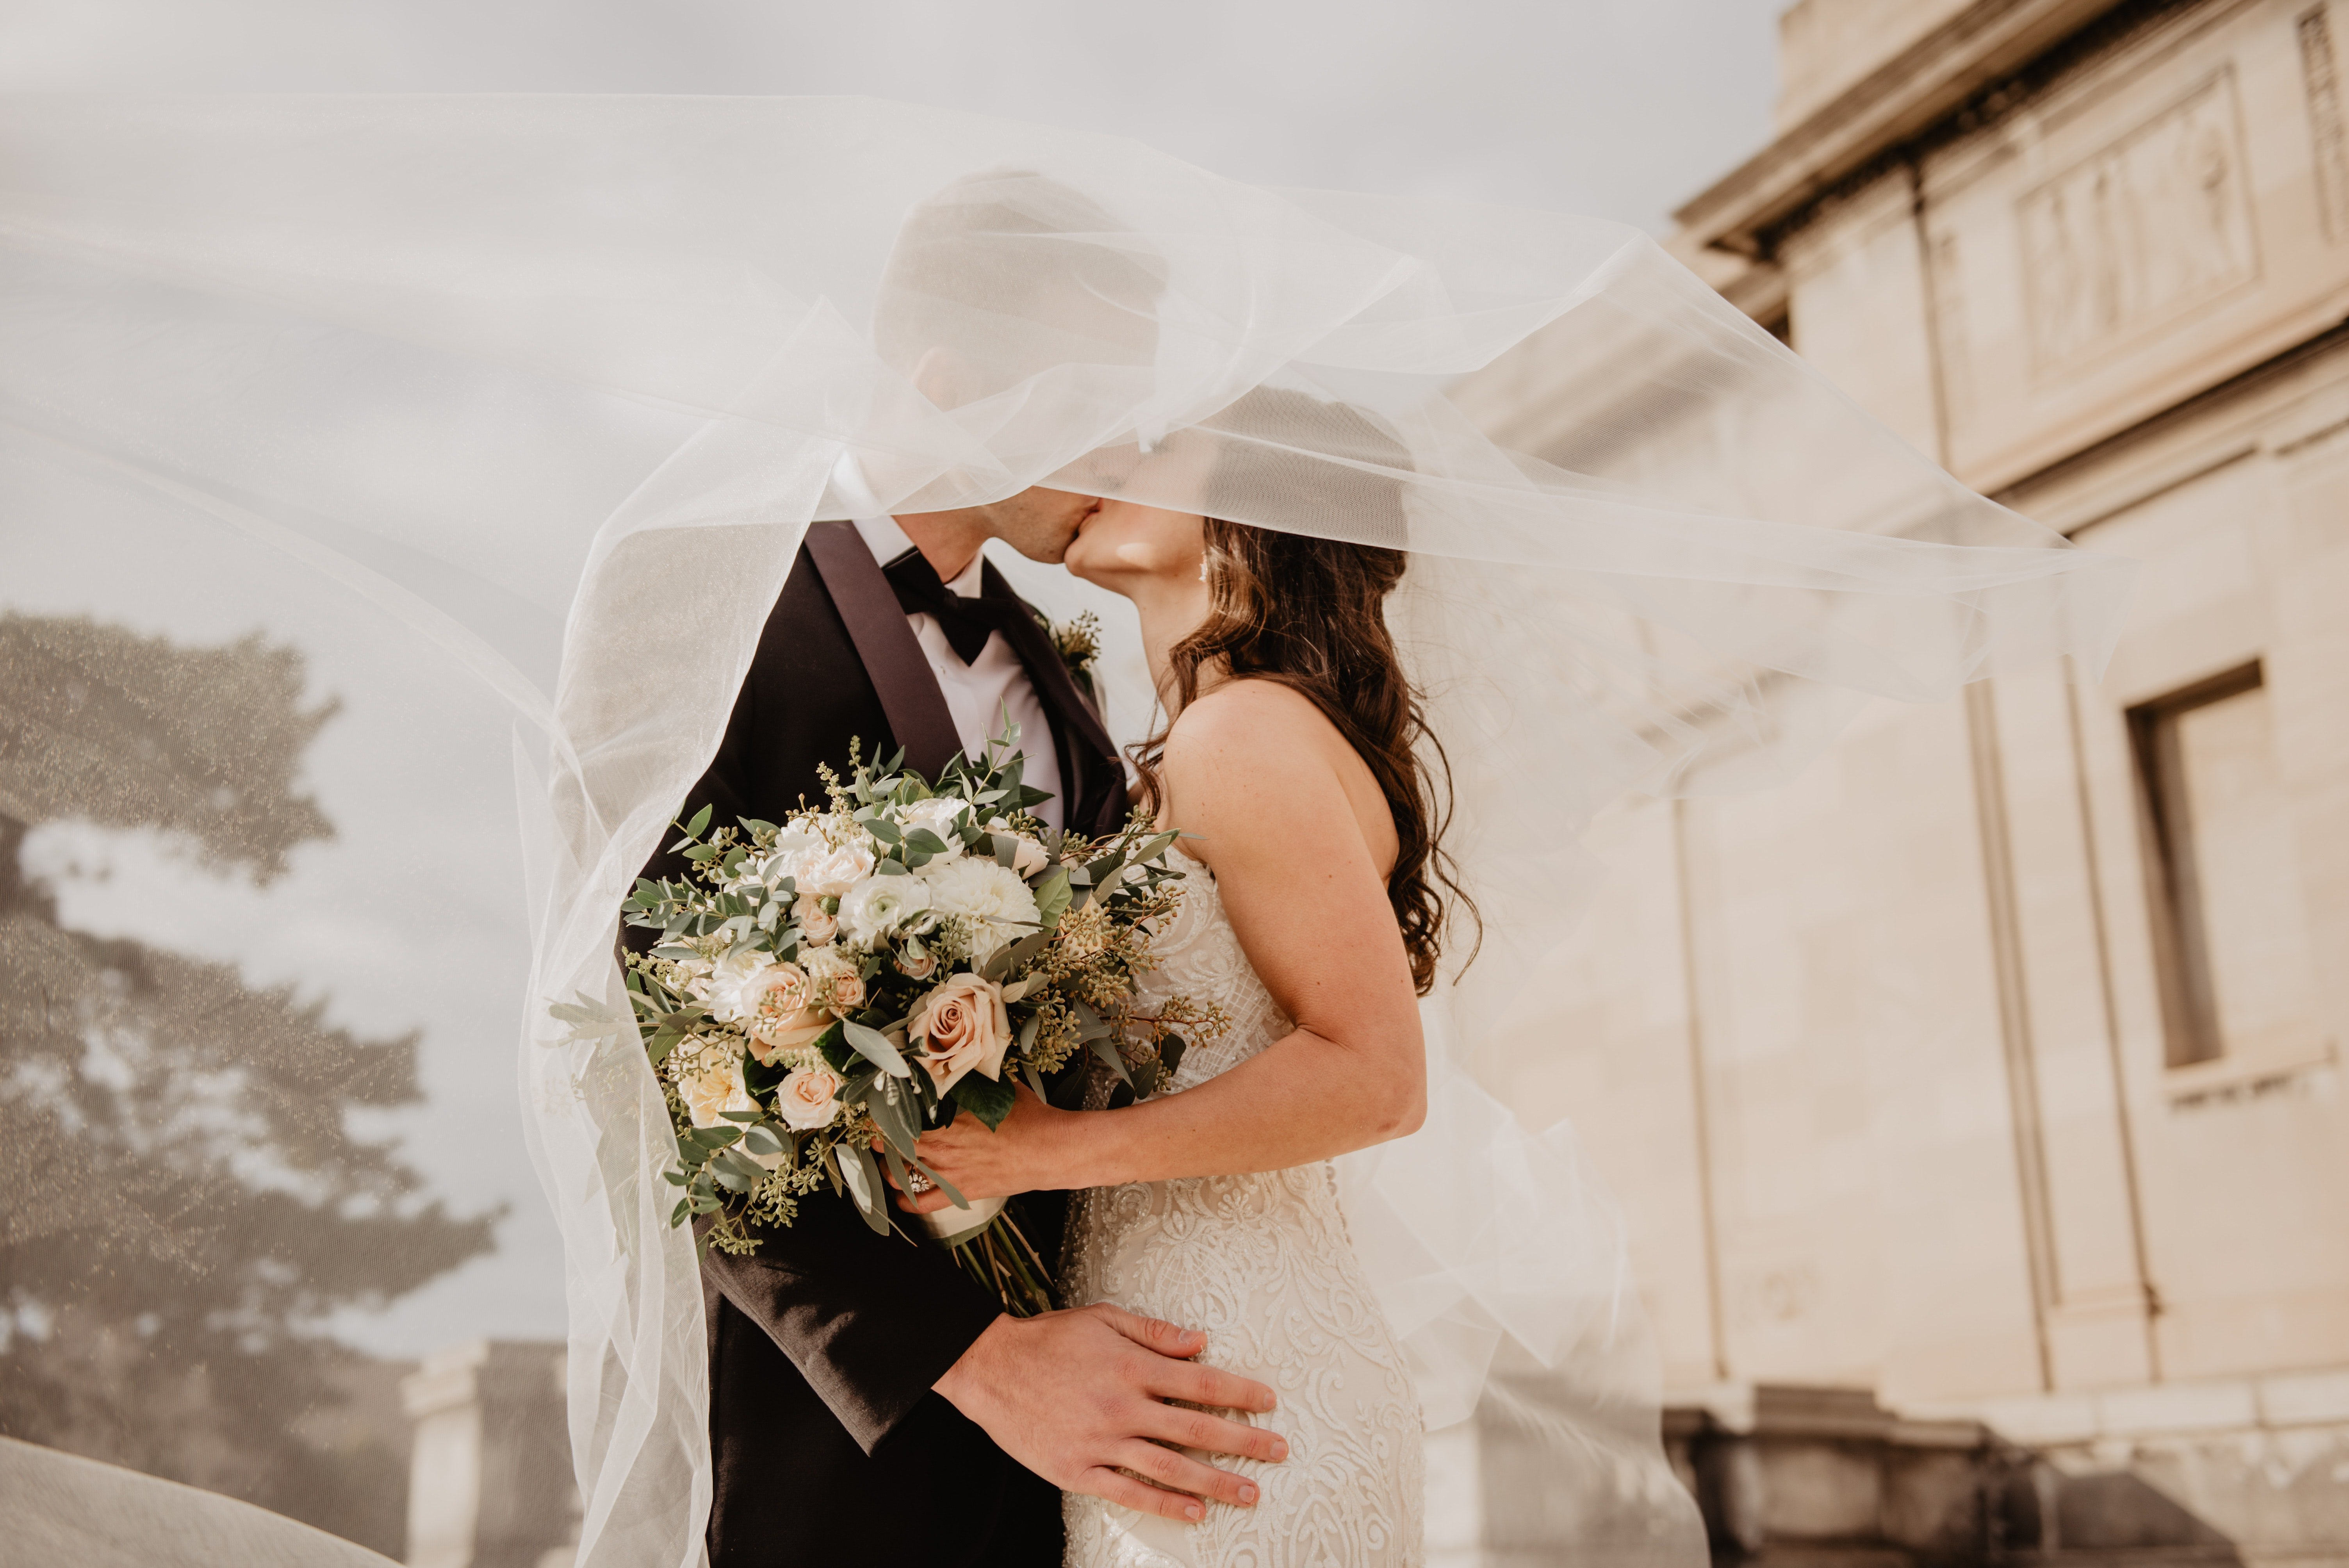 Jonathan and I got married a year later | Source: Pexels